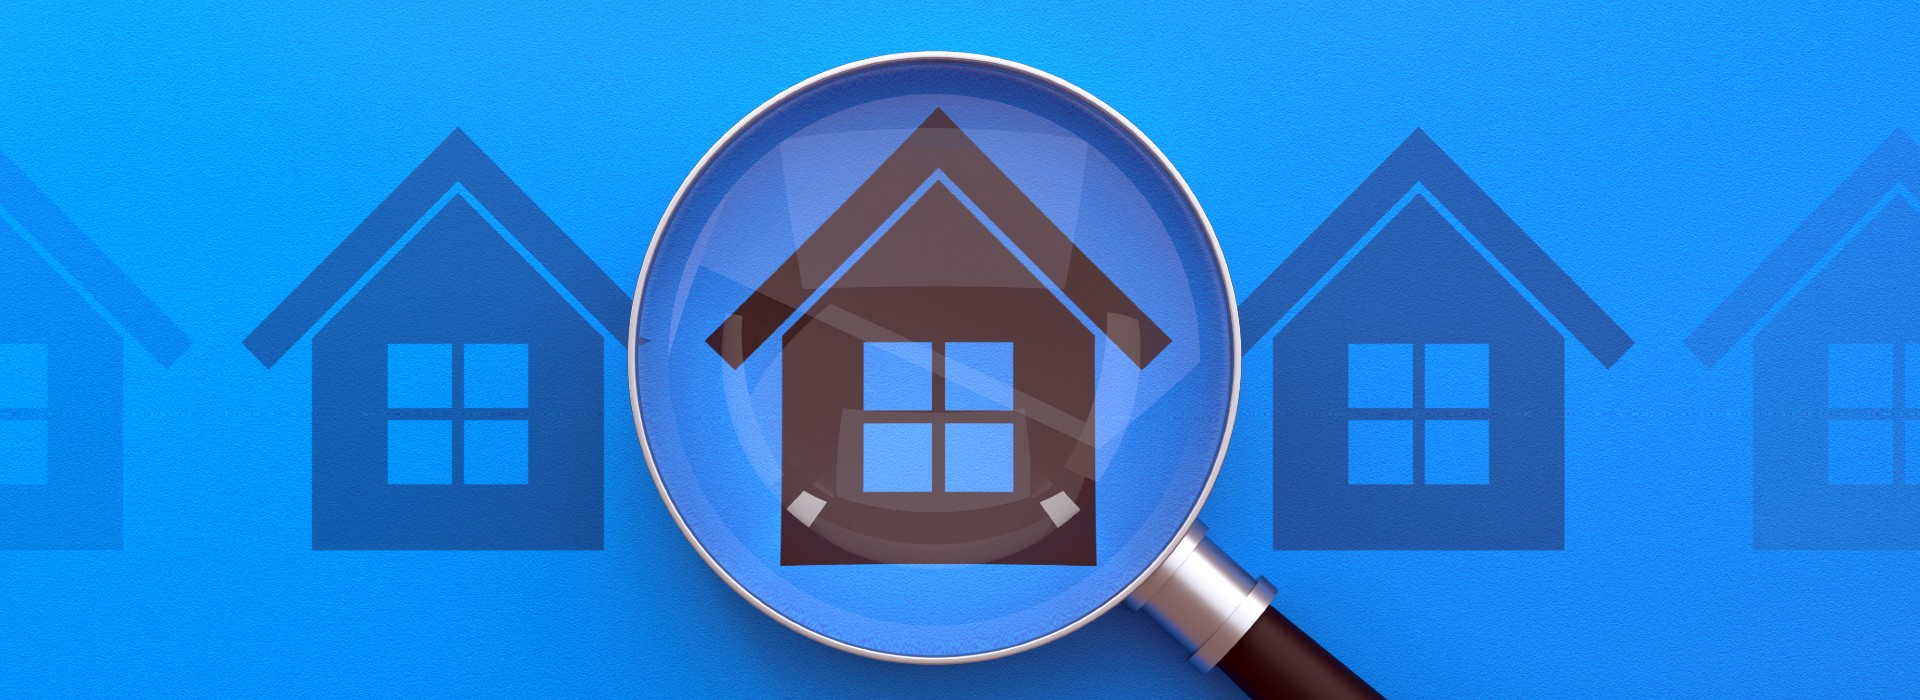 Home Inspector Licensing Update on Friday, January 22nd